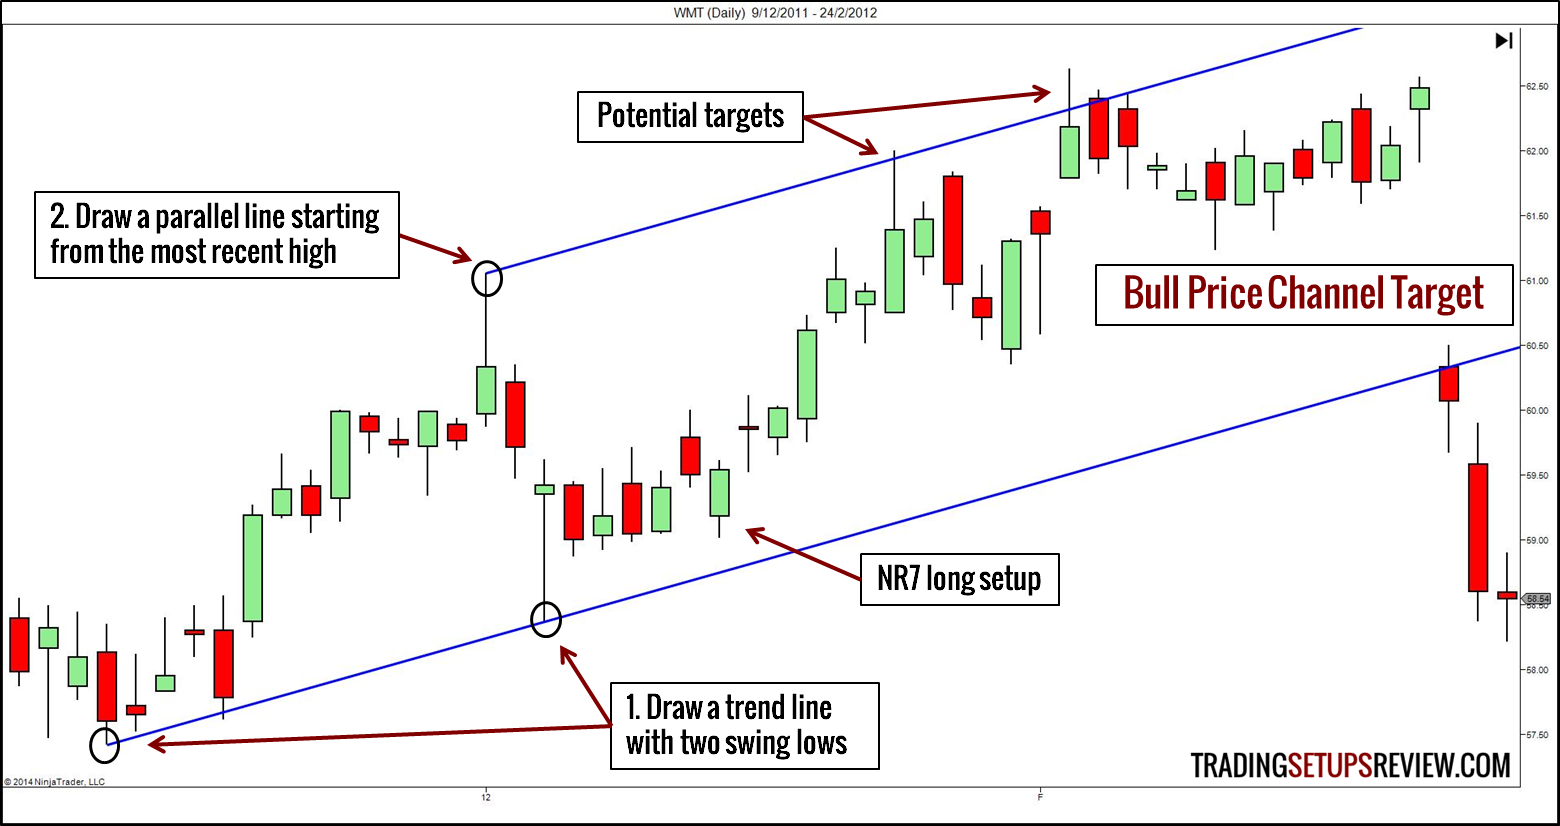 10 Ways For Traders to Take Profit - Trading Setups Review